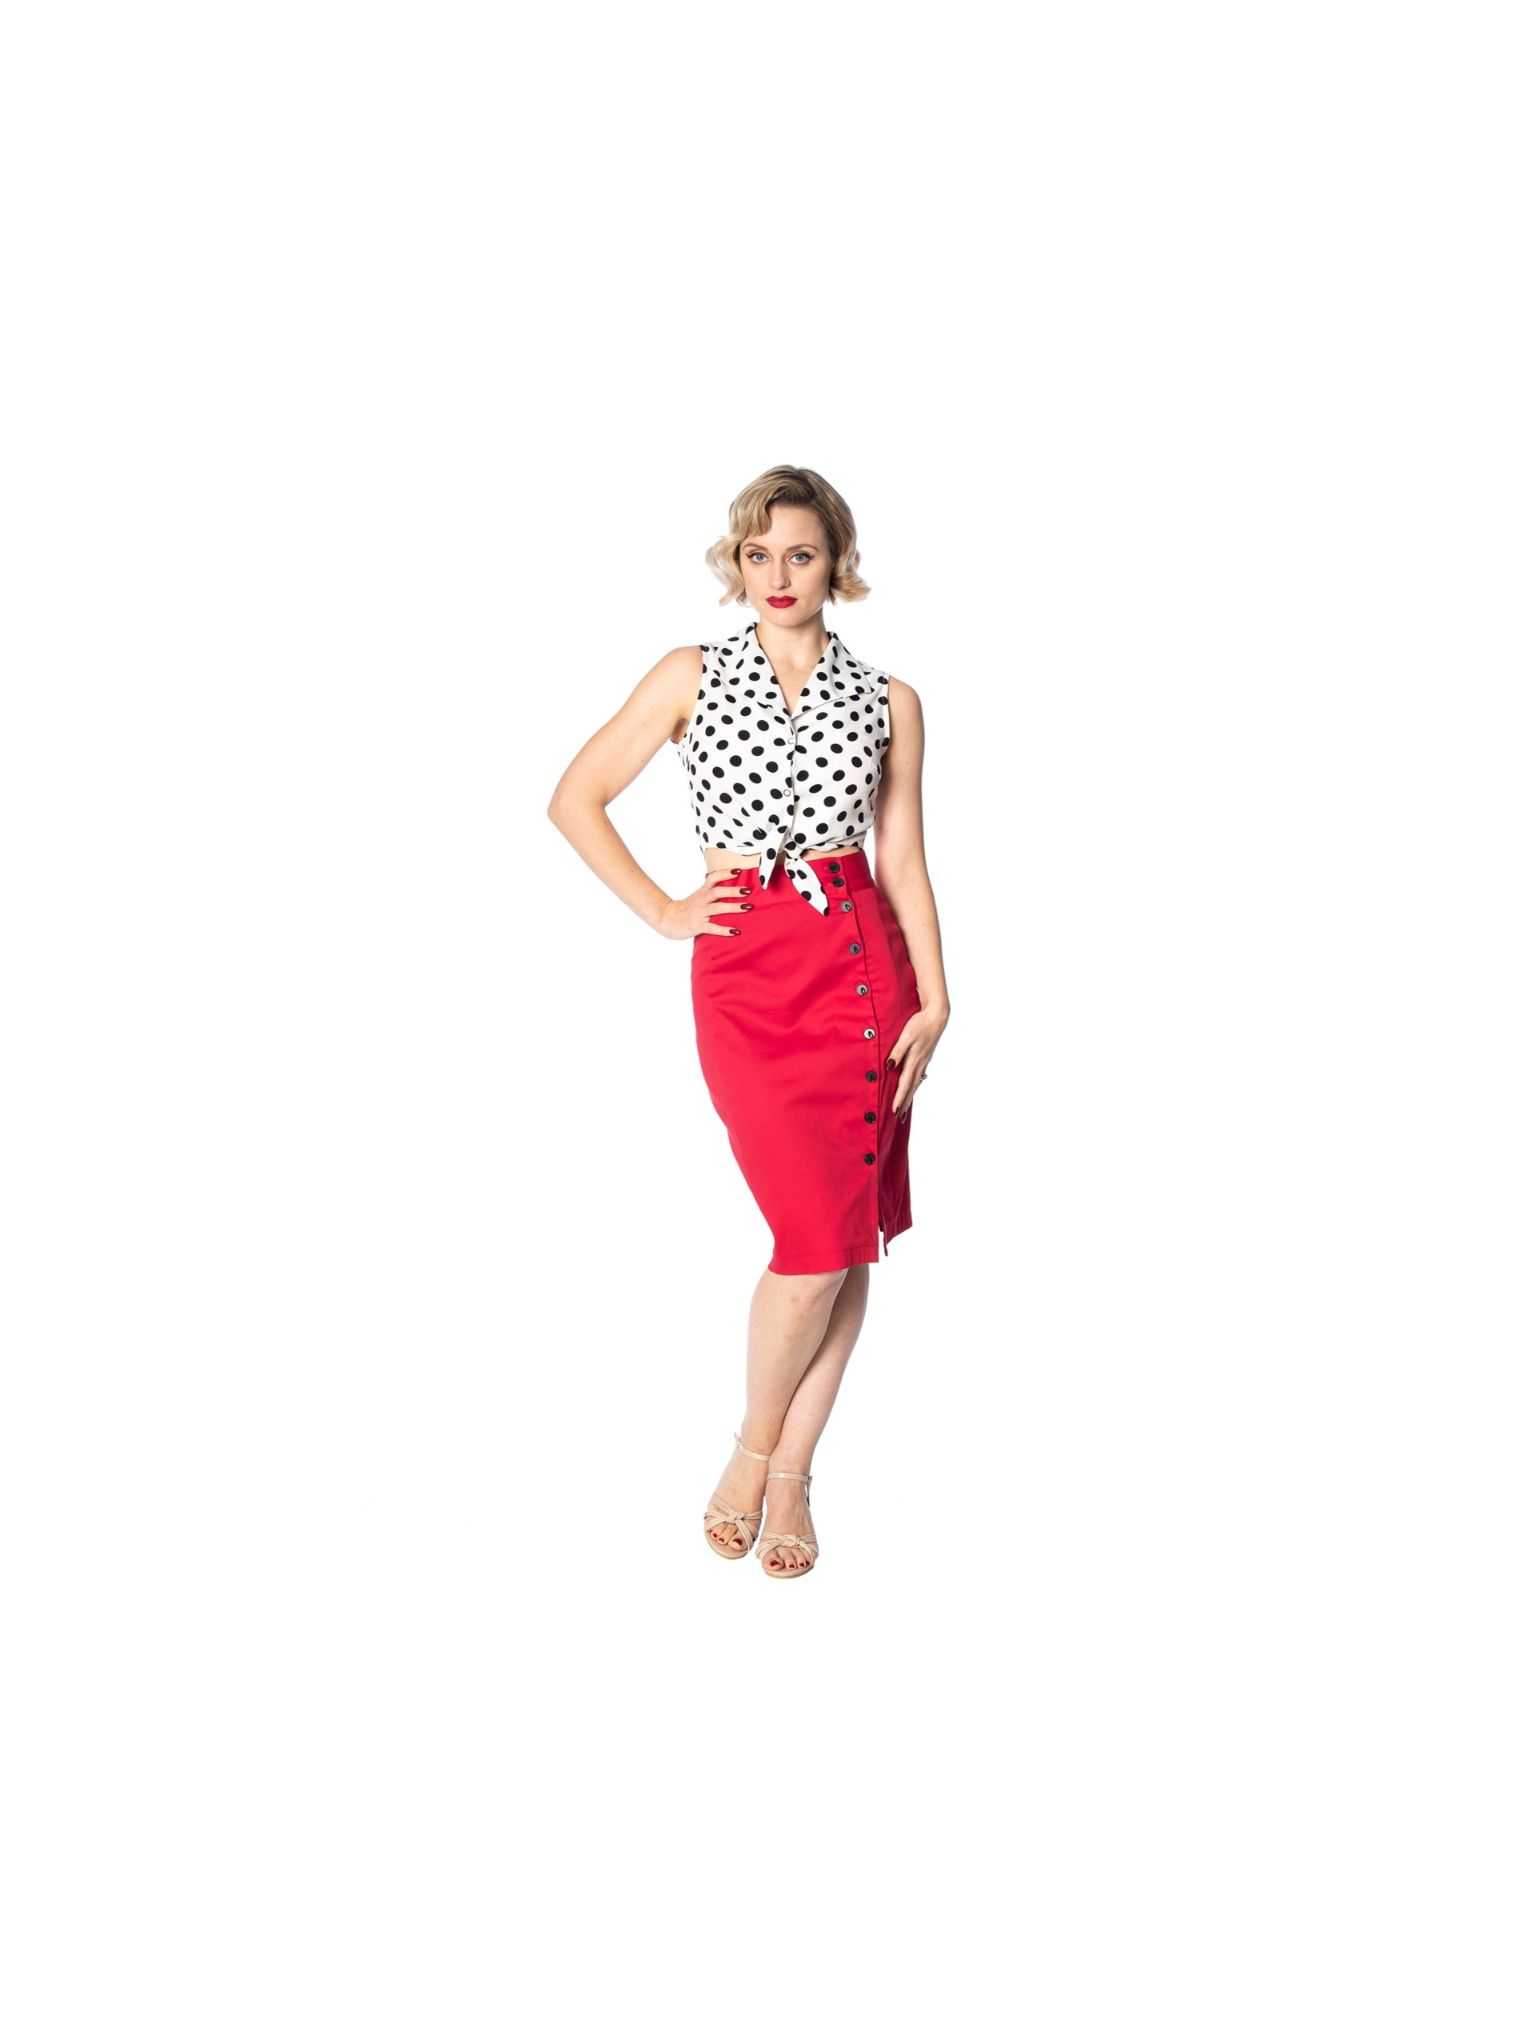 Vintage casual polkadot bra crop top with bow in the back